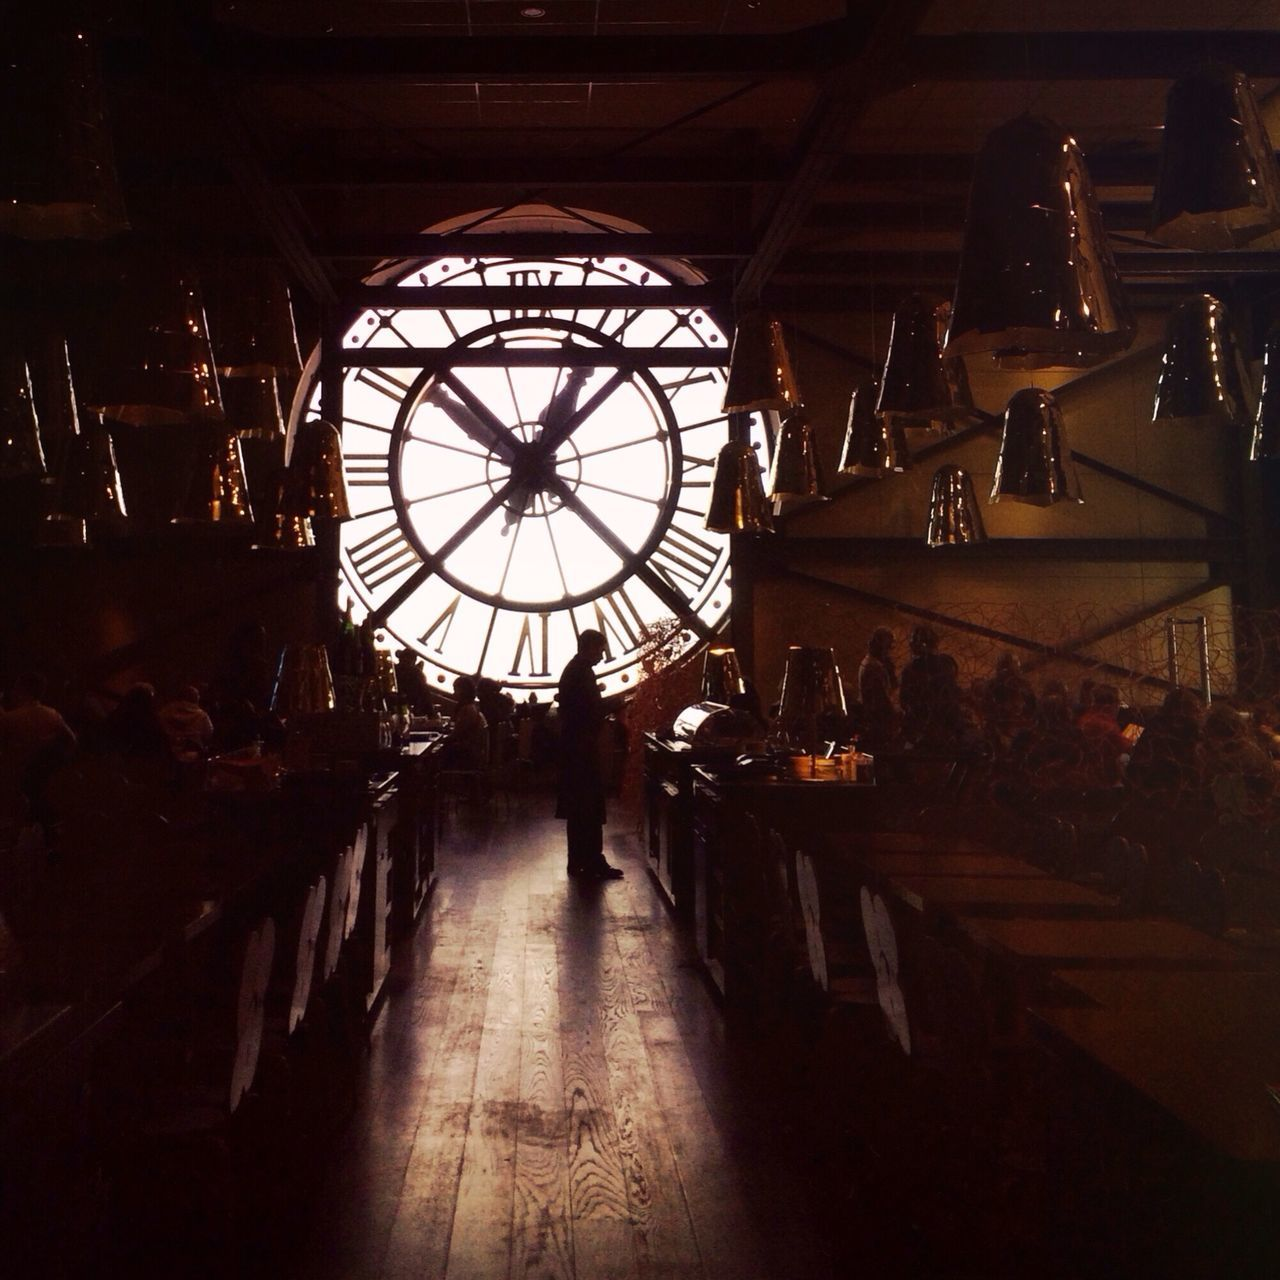 clock, indoors, time, clock face, real people, roman numeral, standing, day, minute hand, one person, people